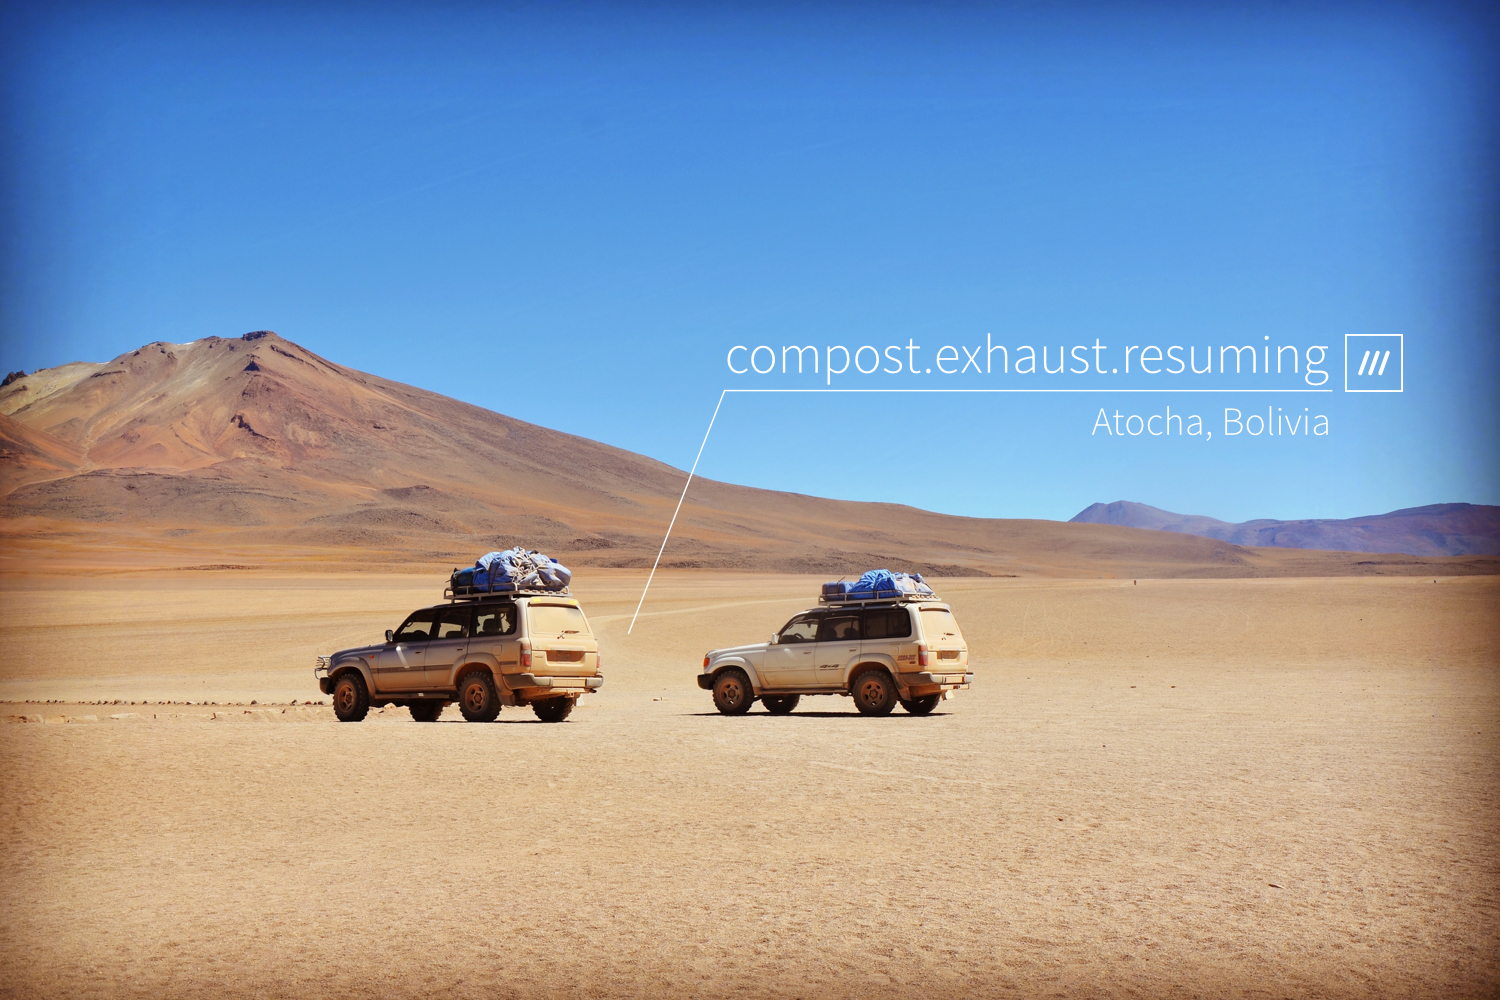 two cars parked in desert at 3 word address compost.exhaust.resuming